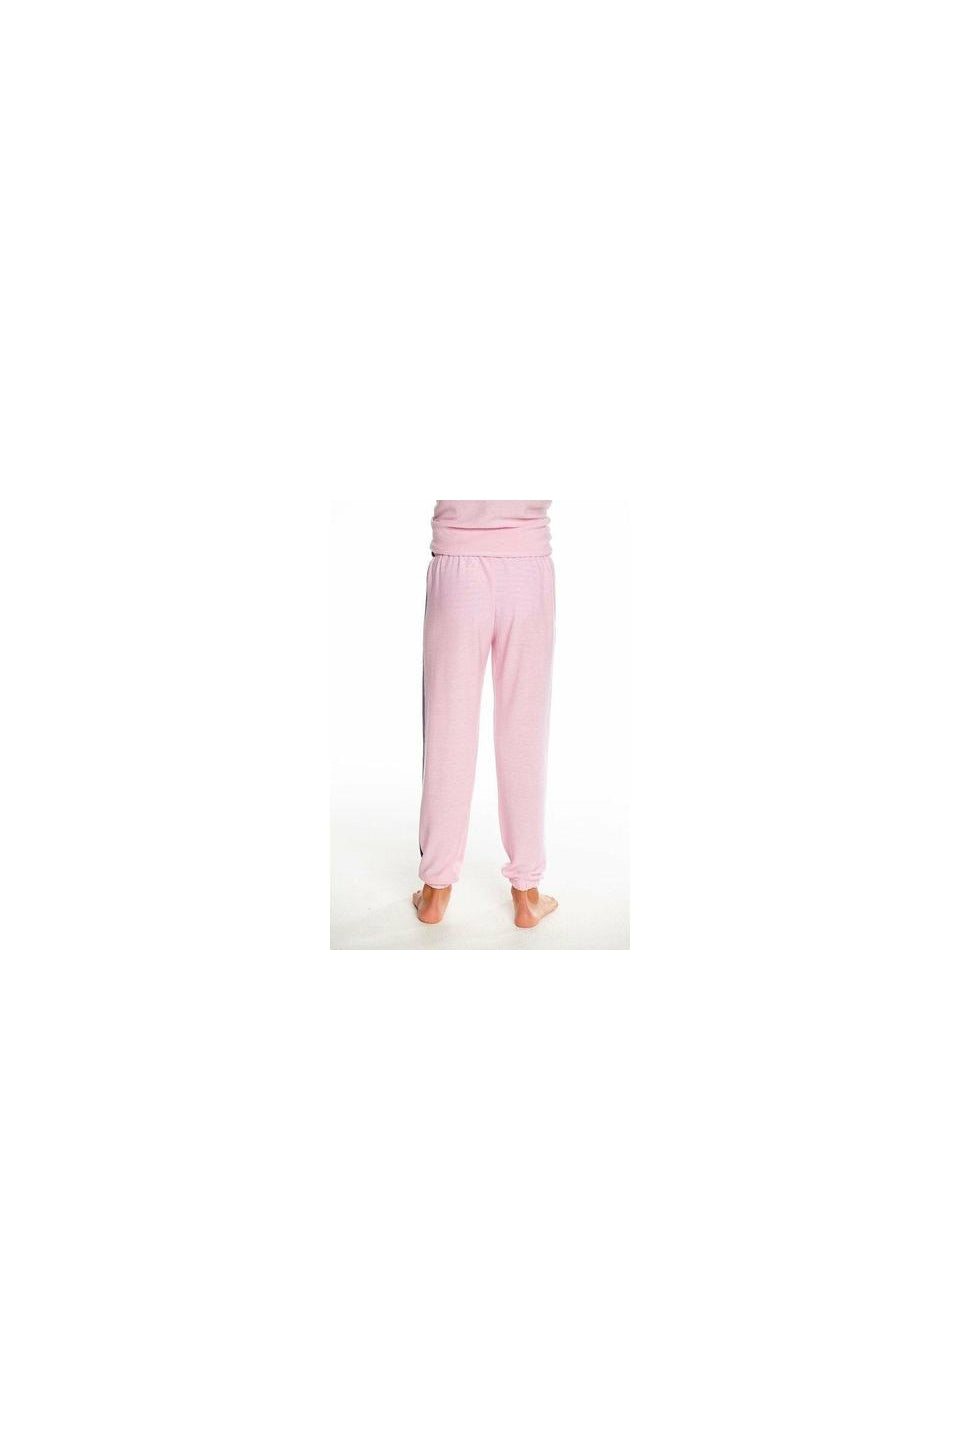 Chaser Stripe Sweatpants In Knit Pink Cloud